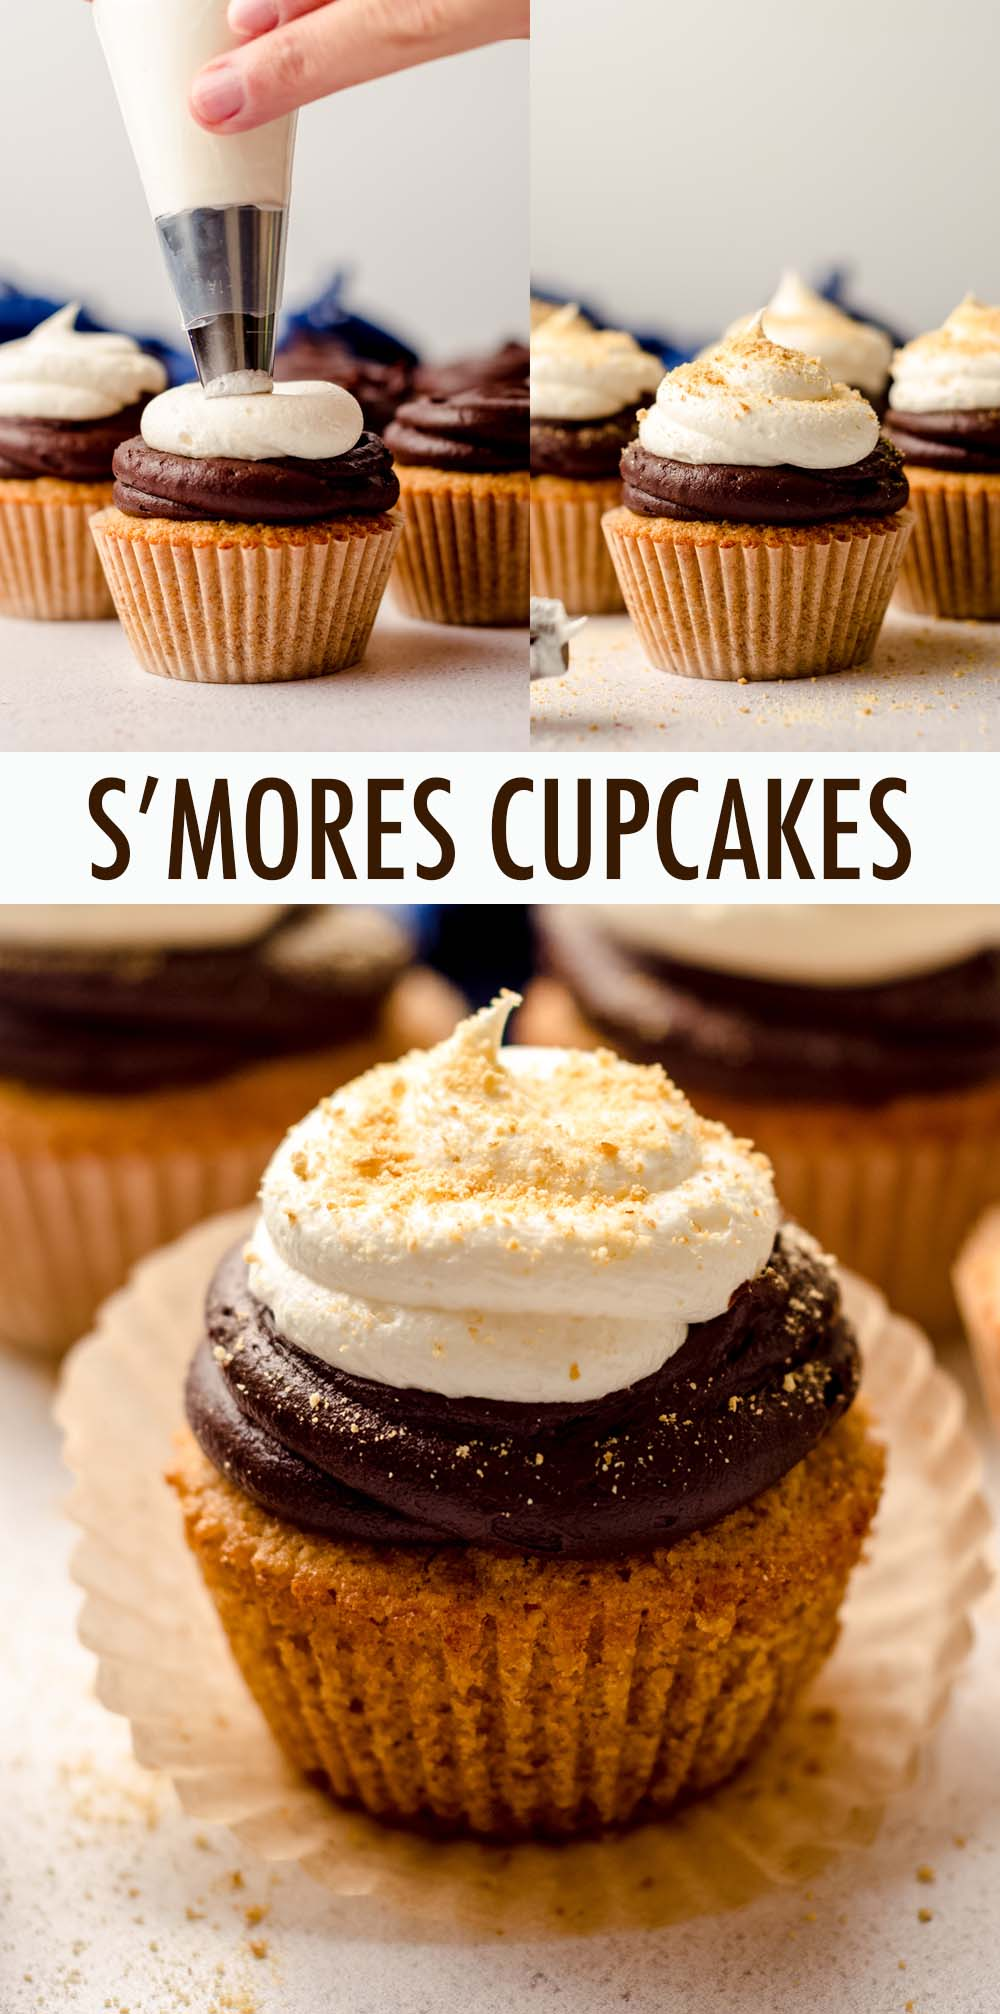 Buttery, textured graham cracker cupcakes topped with a duo of velvety smooth chocolate buttercream and fluffy marshmallow buttercream.